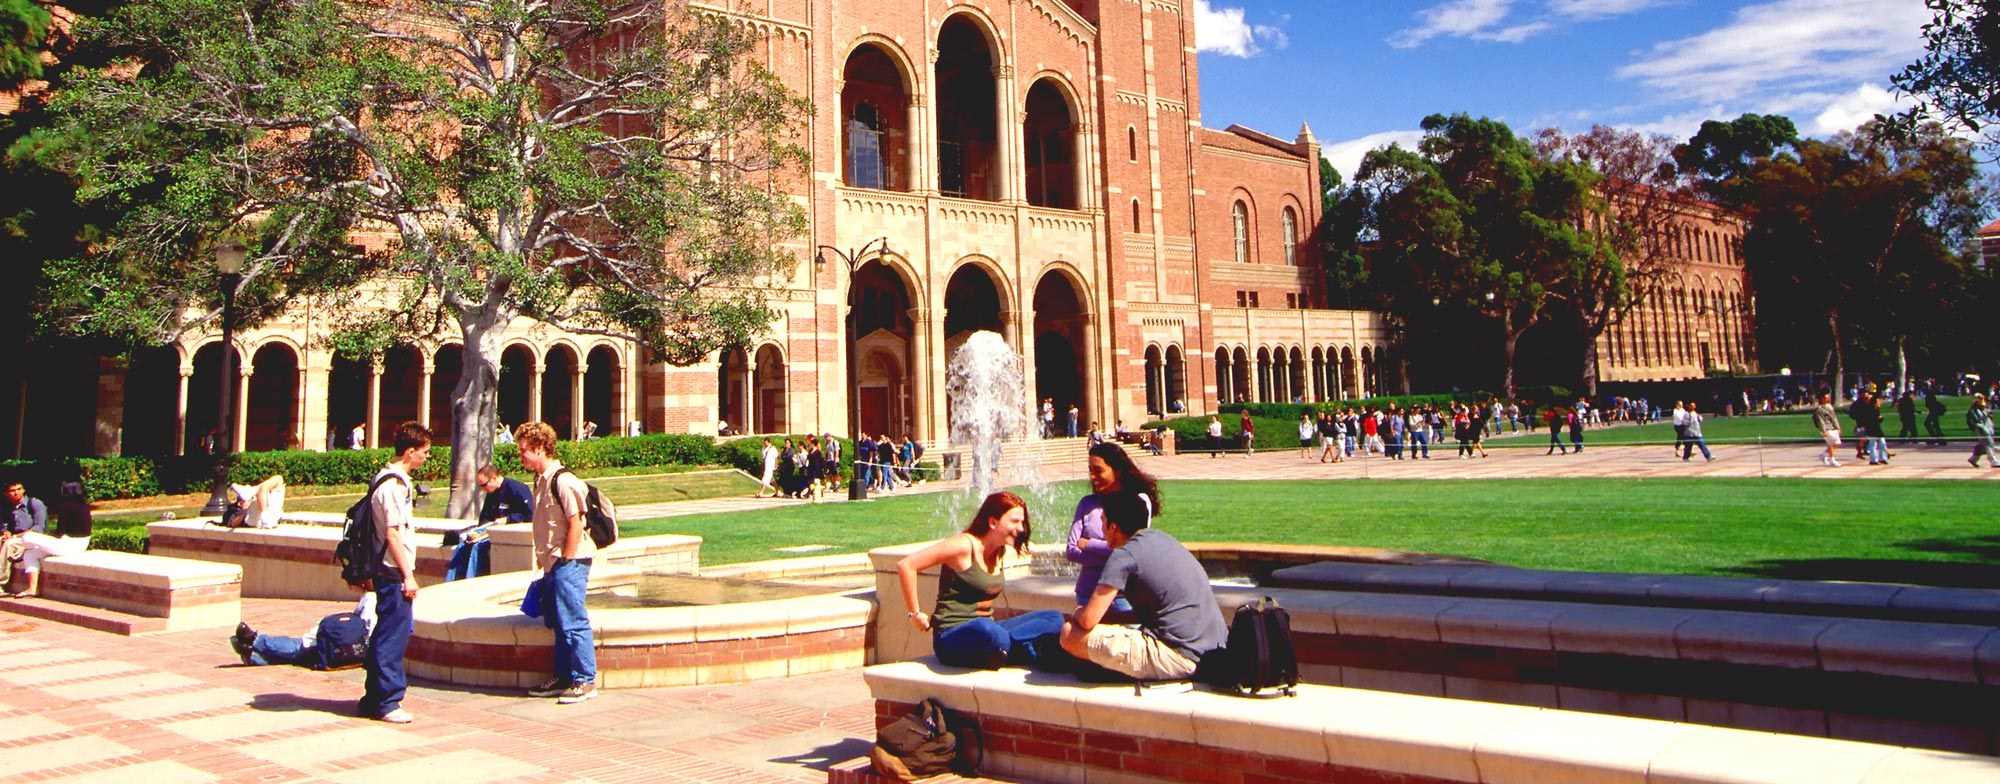 10 of the easiest classes at ucla